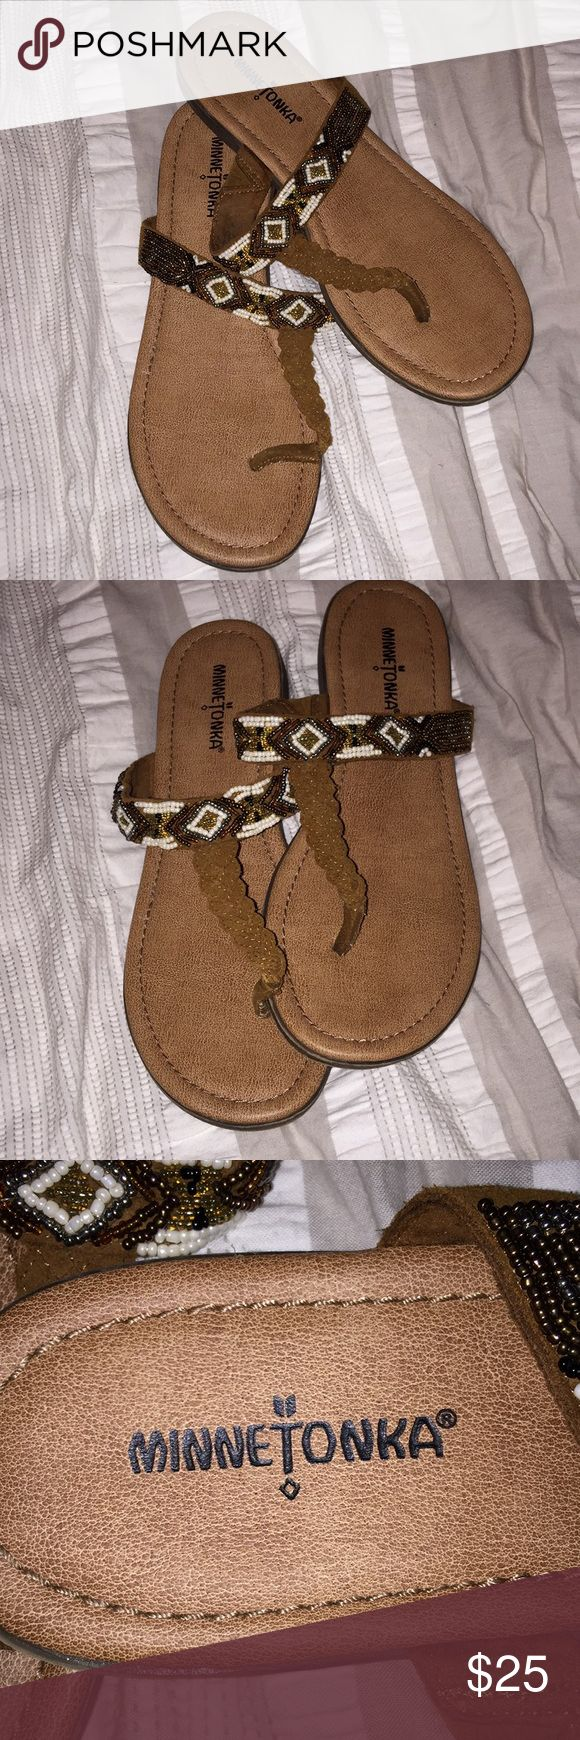 Minnetonka sandals These are Minnetonka sandals, braided leather and beading. Women's size 10 Minnetonka Shoes Sandals